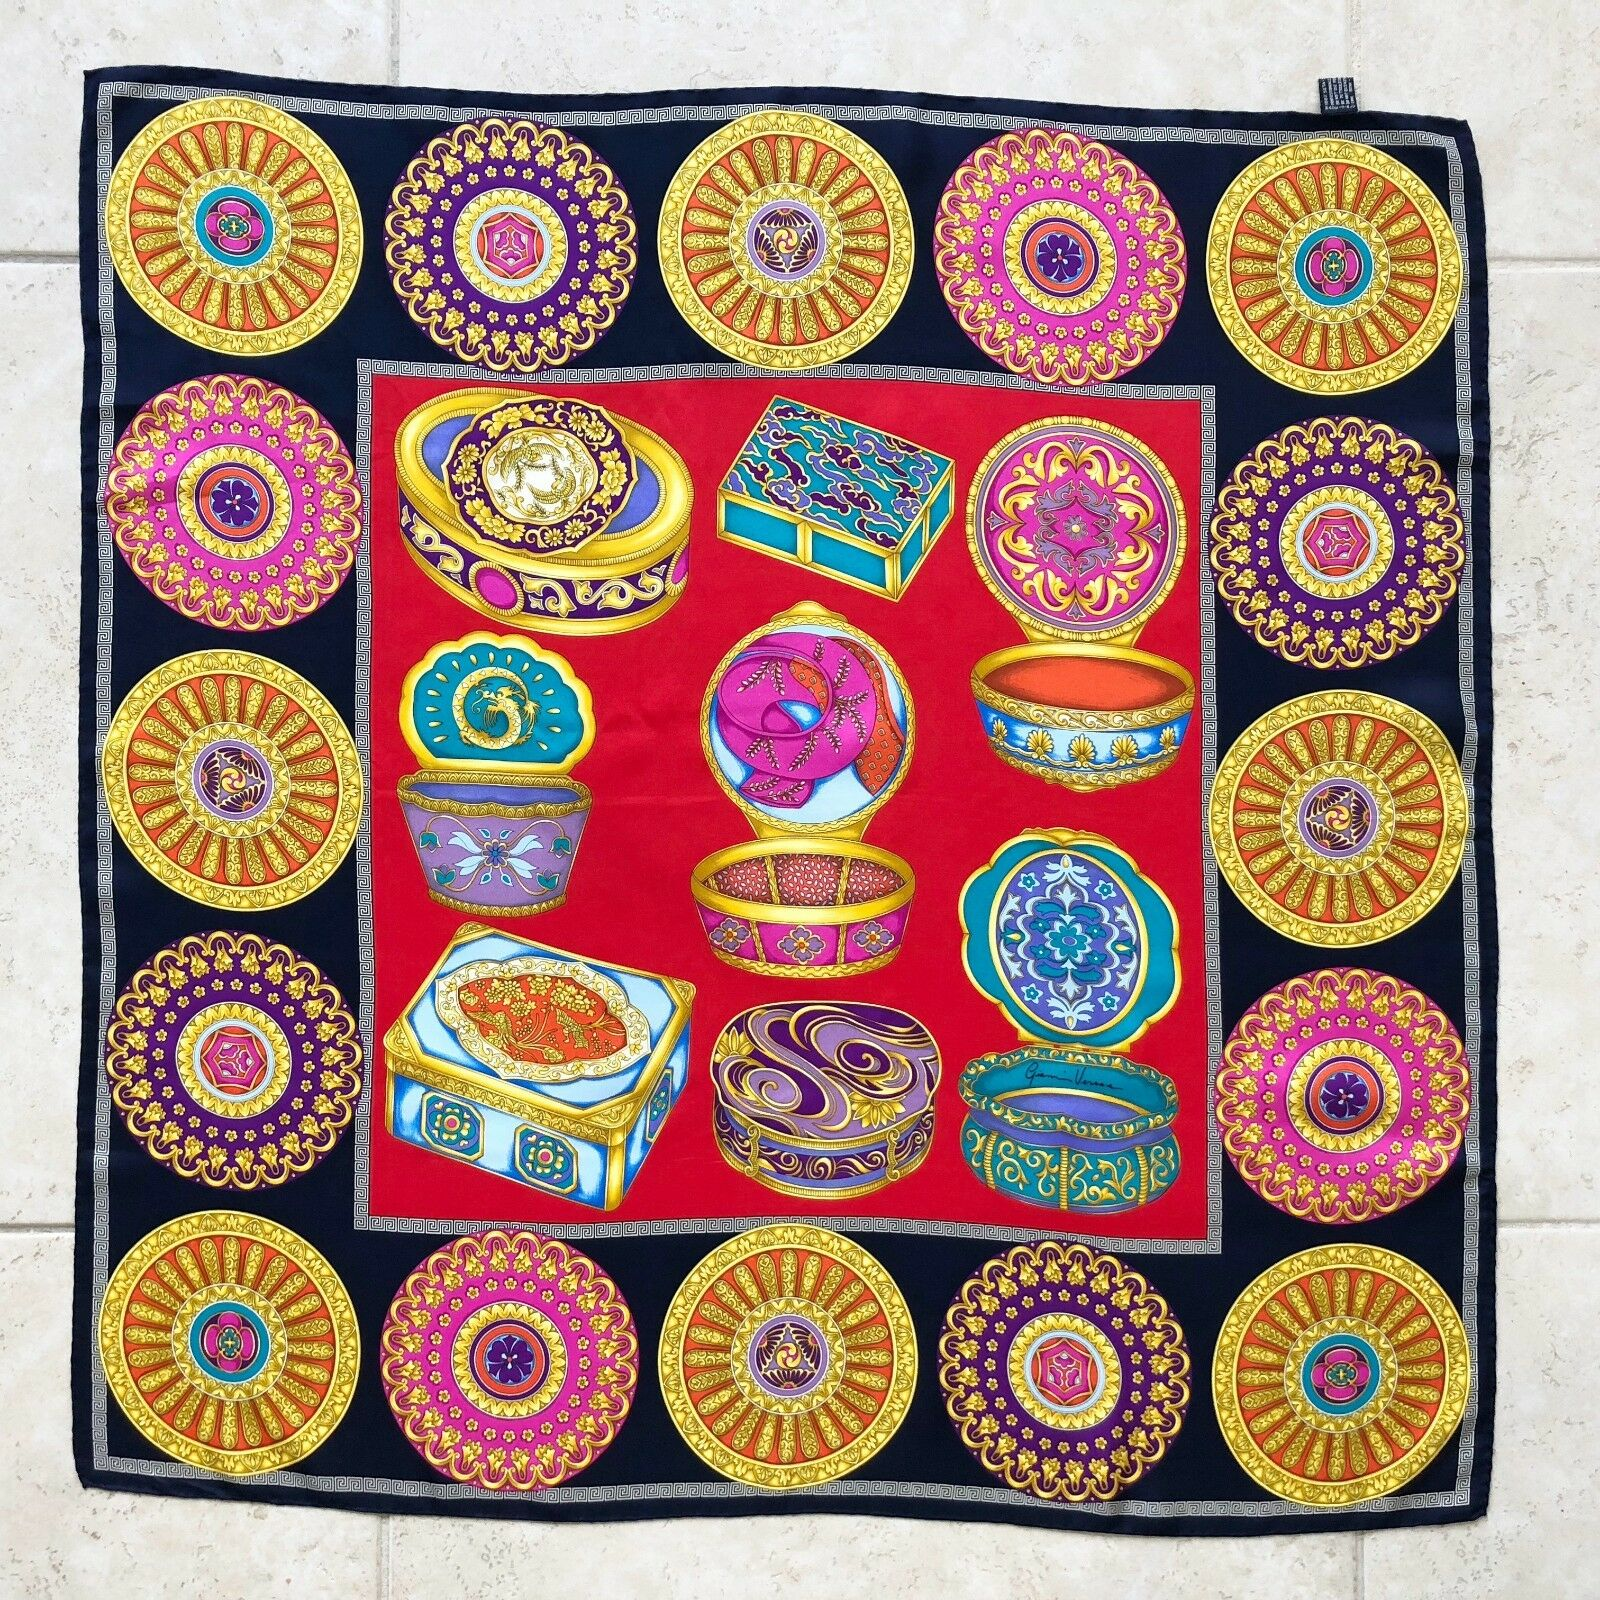 GIANNI VERSACE navy blue red silk scarf Japanese Jewelry Box size 34